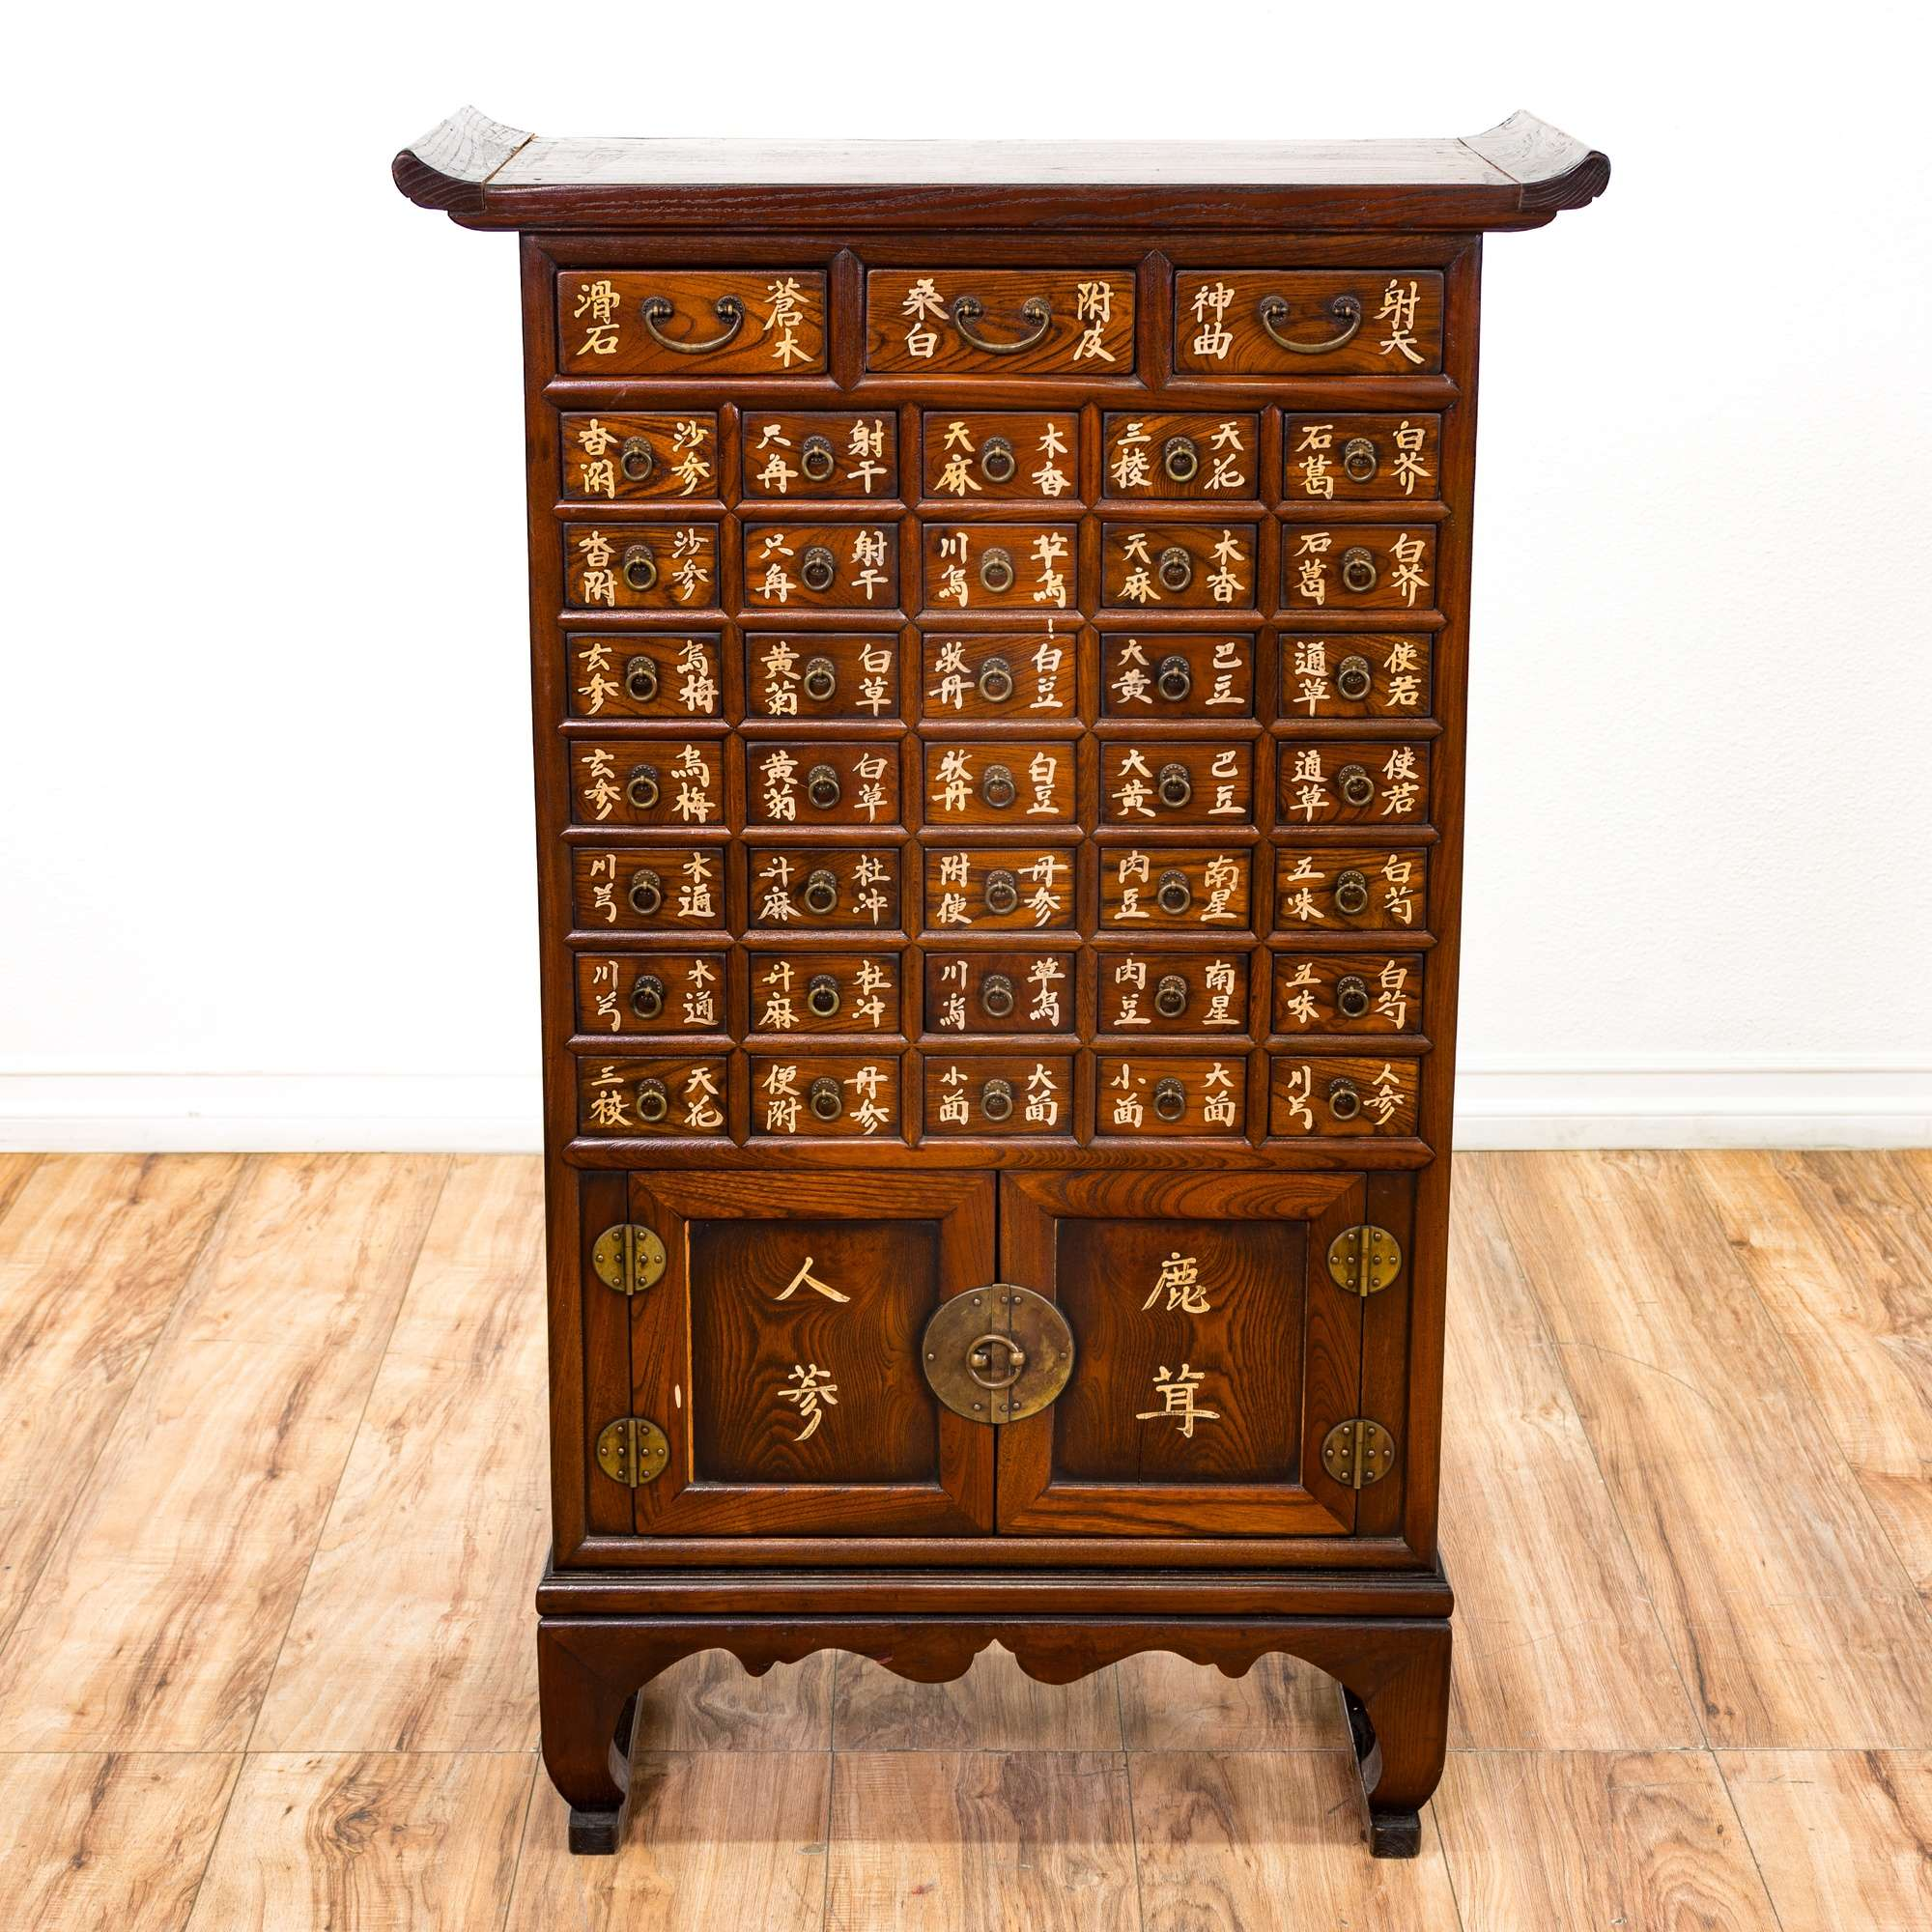 Stupendous Asian Apothecary Cabinet W Small Compartment Drawers Interior Design Ideas Grebswwsoteloinfo